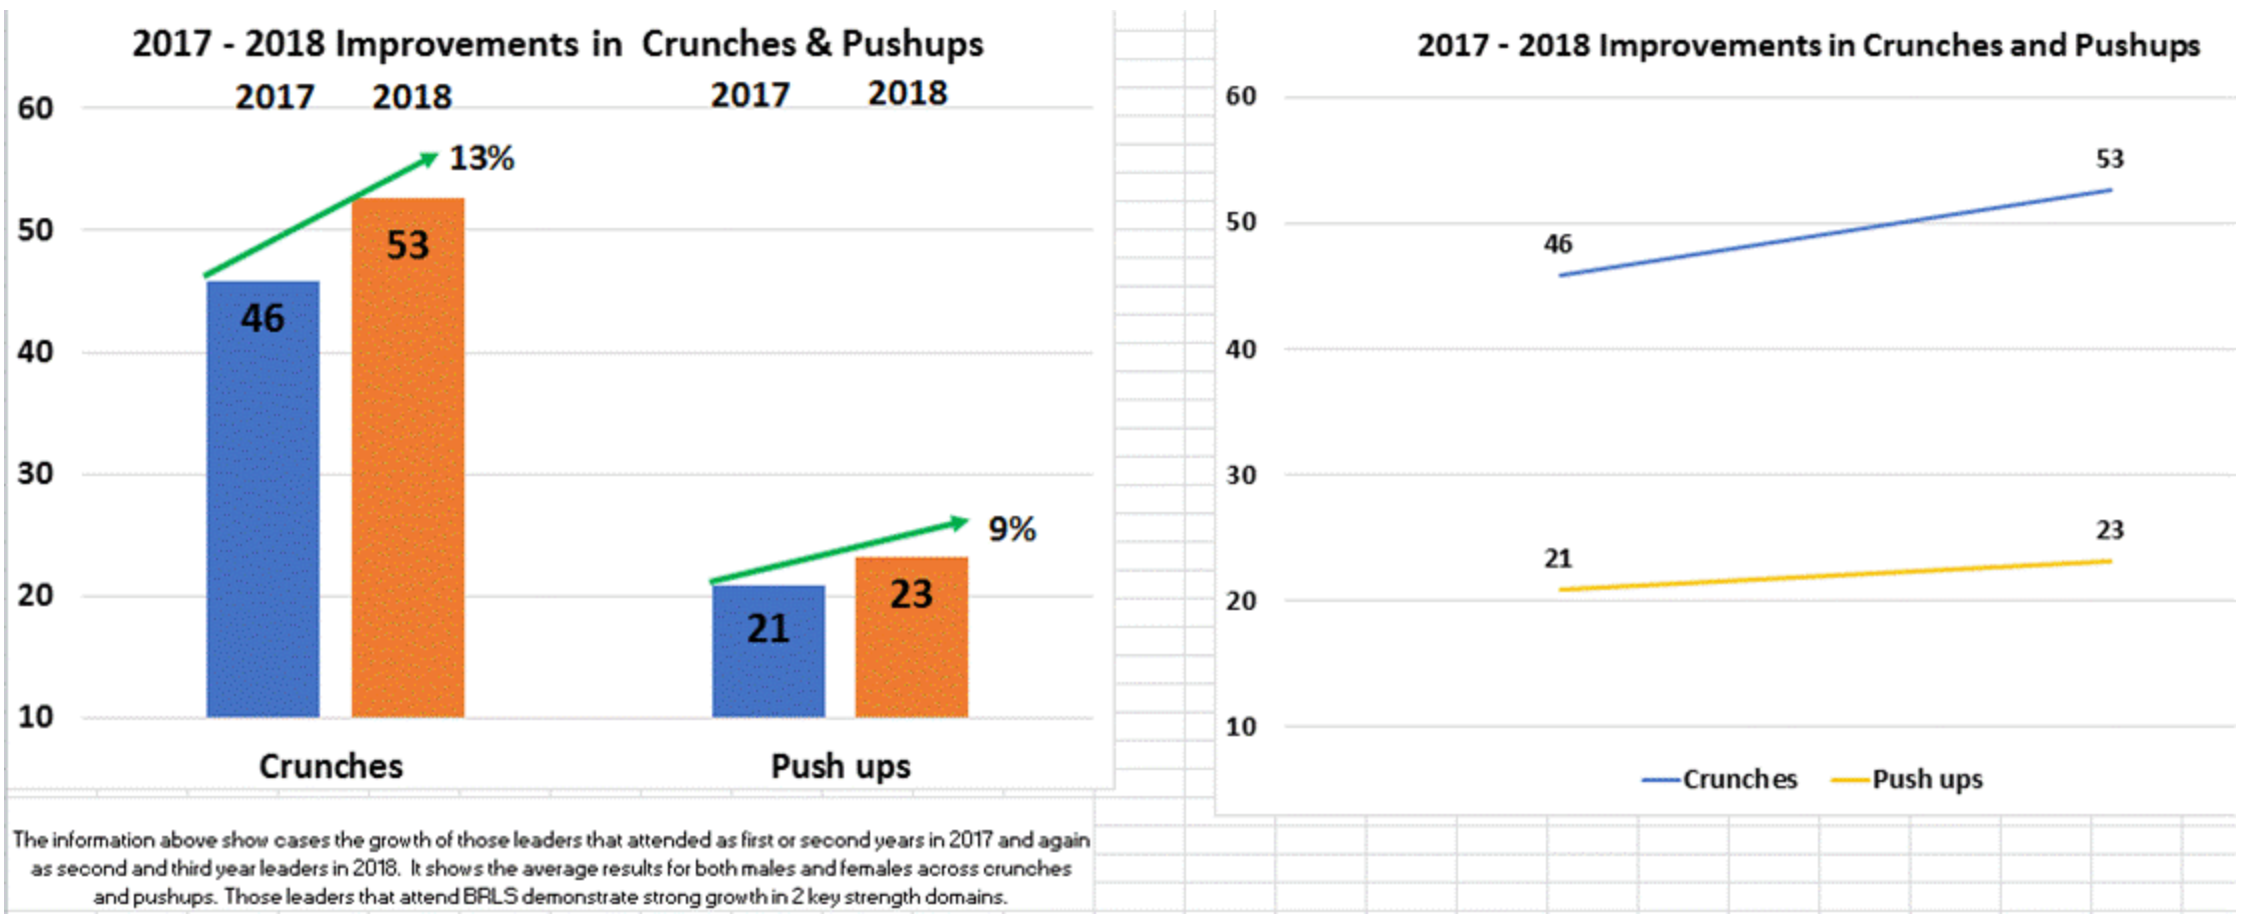 **The information above show cases the growth of those leaders that attended as first or second years in 2017 and again as second and third year leaders in 2018.  It shows the average results for both males and females across crunches and pushups. Those leaders that attend BRLS demonstrate strong growth in 2 key strength domains.**